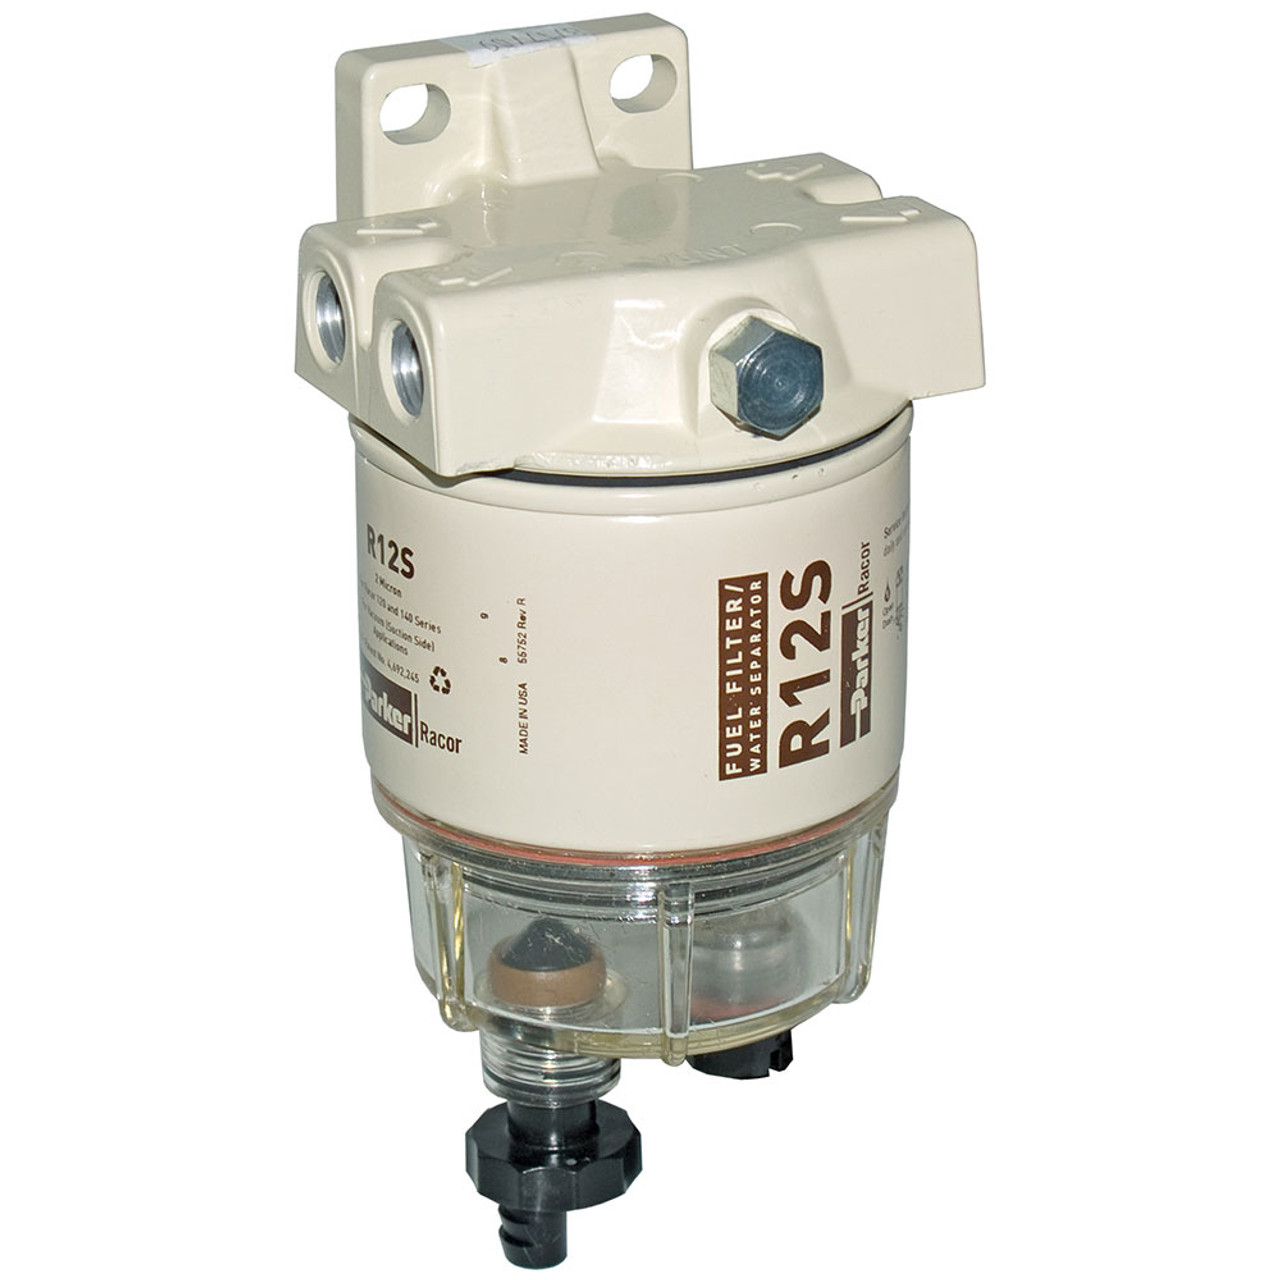 racor 120a low flow fuel filter water separator filter assembly 2 micron [ 1000 x 1000 Pixel ]